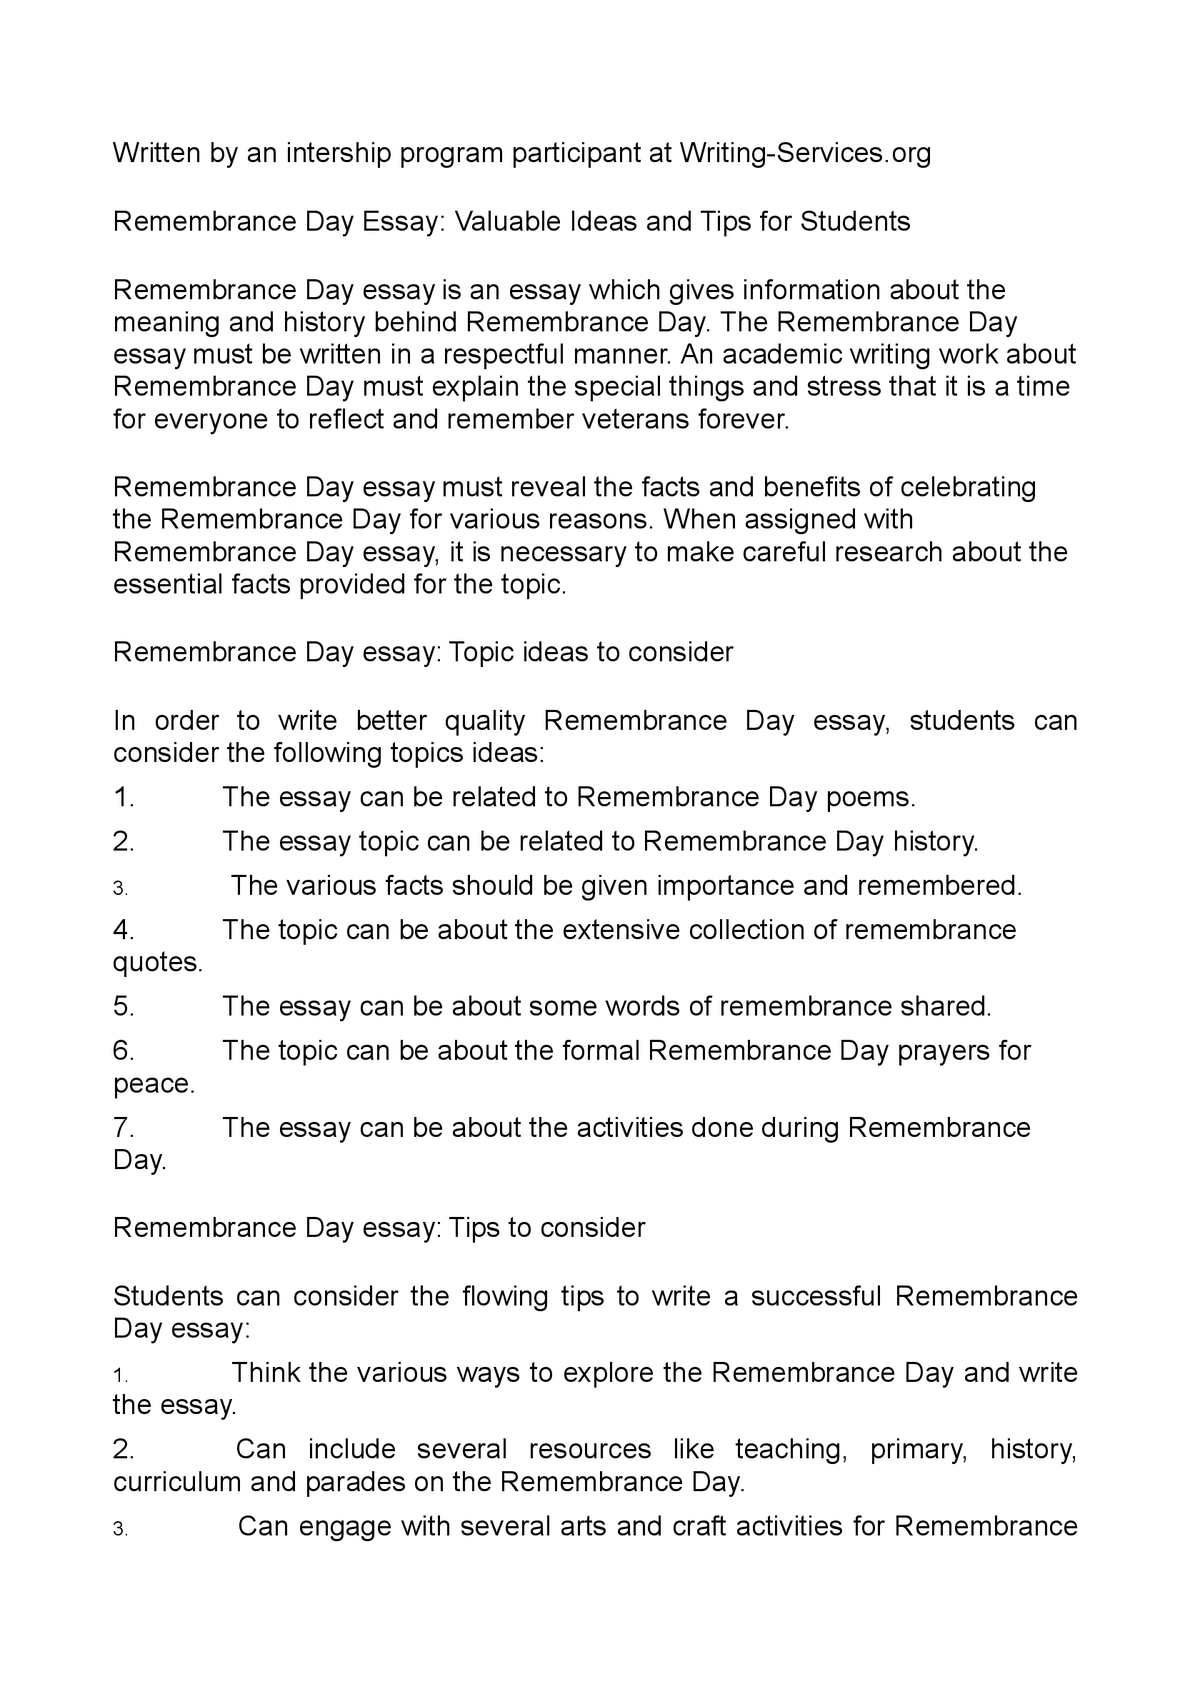 calaméo remembrance day essay valuable ideas and tips for students